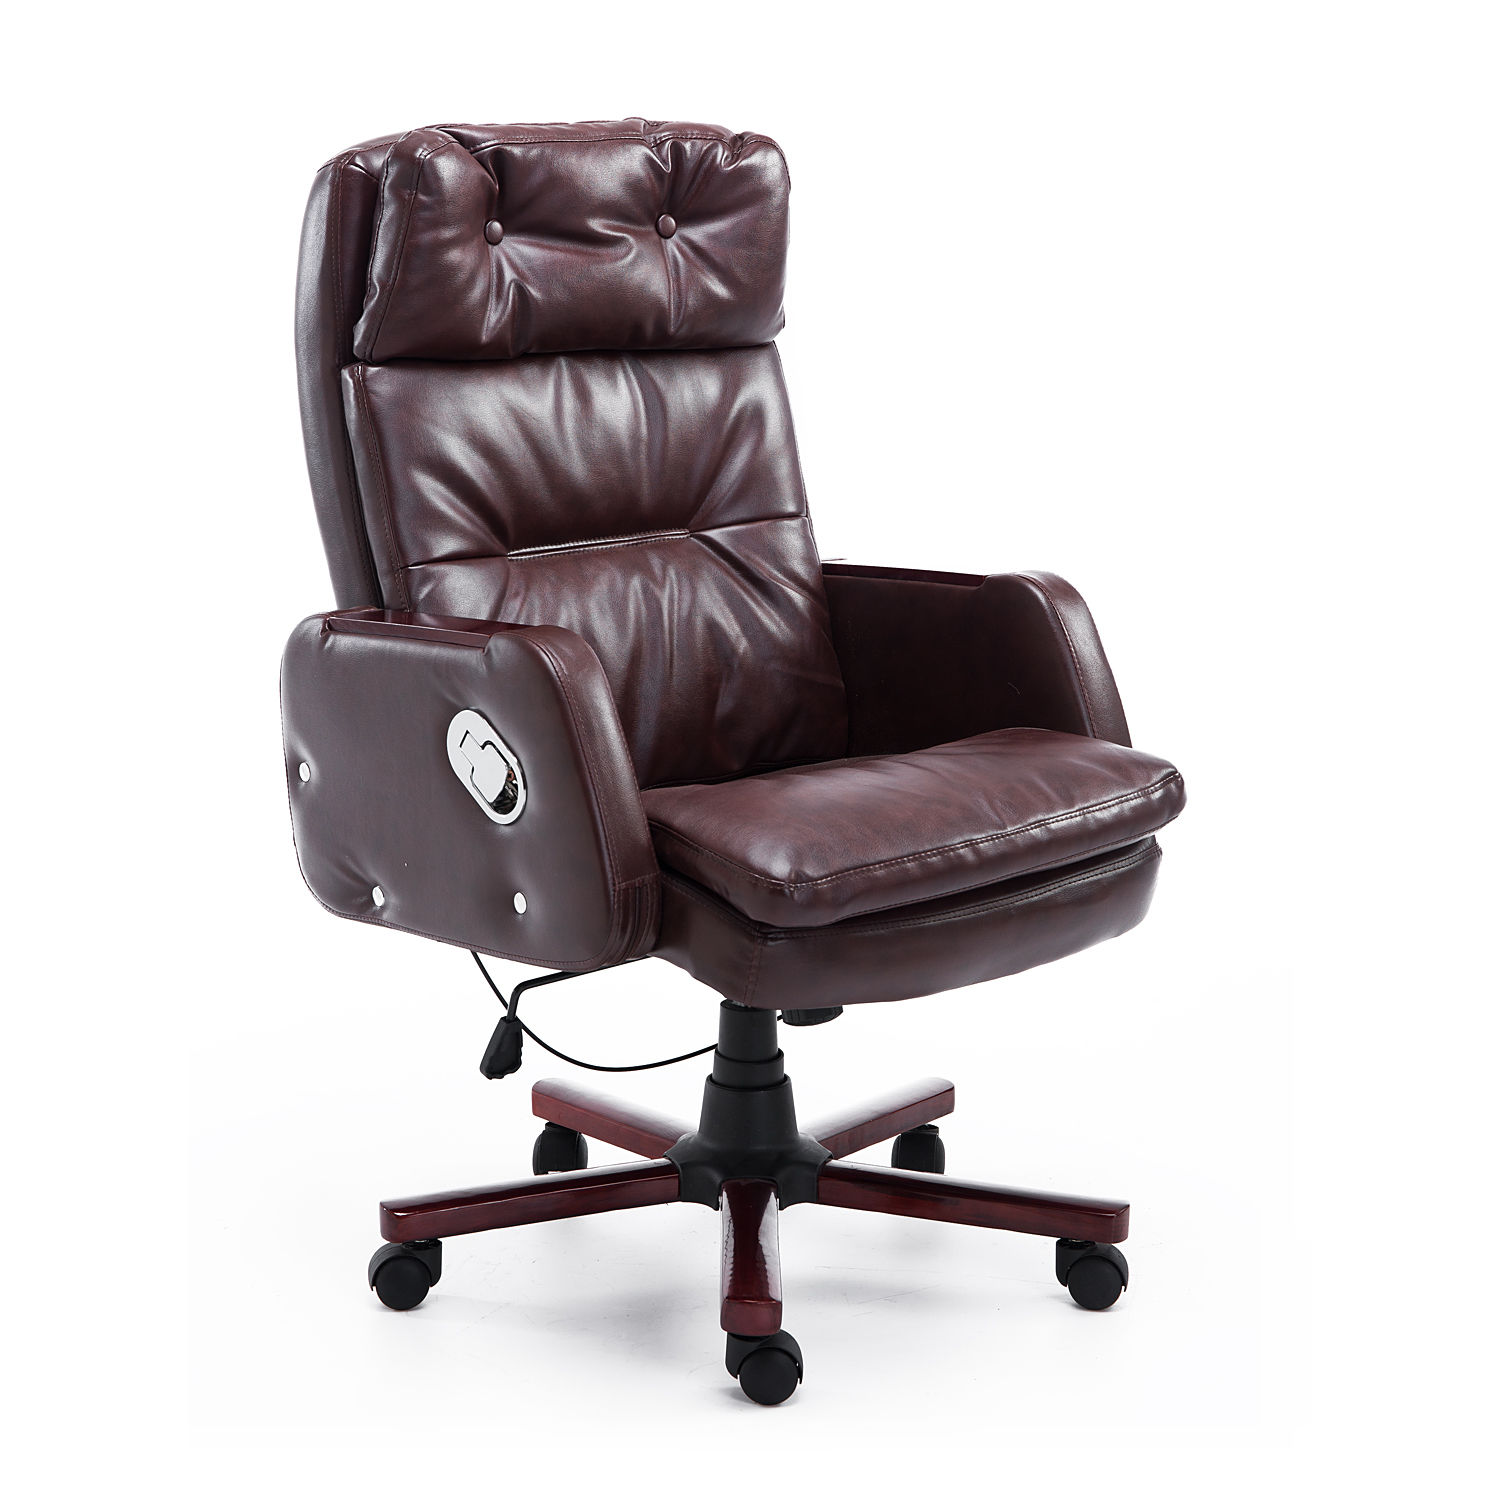 luxury leather office chair. Picture 2 Of 11 Luxury Leather Office Chair U